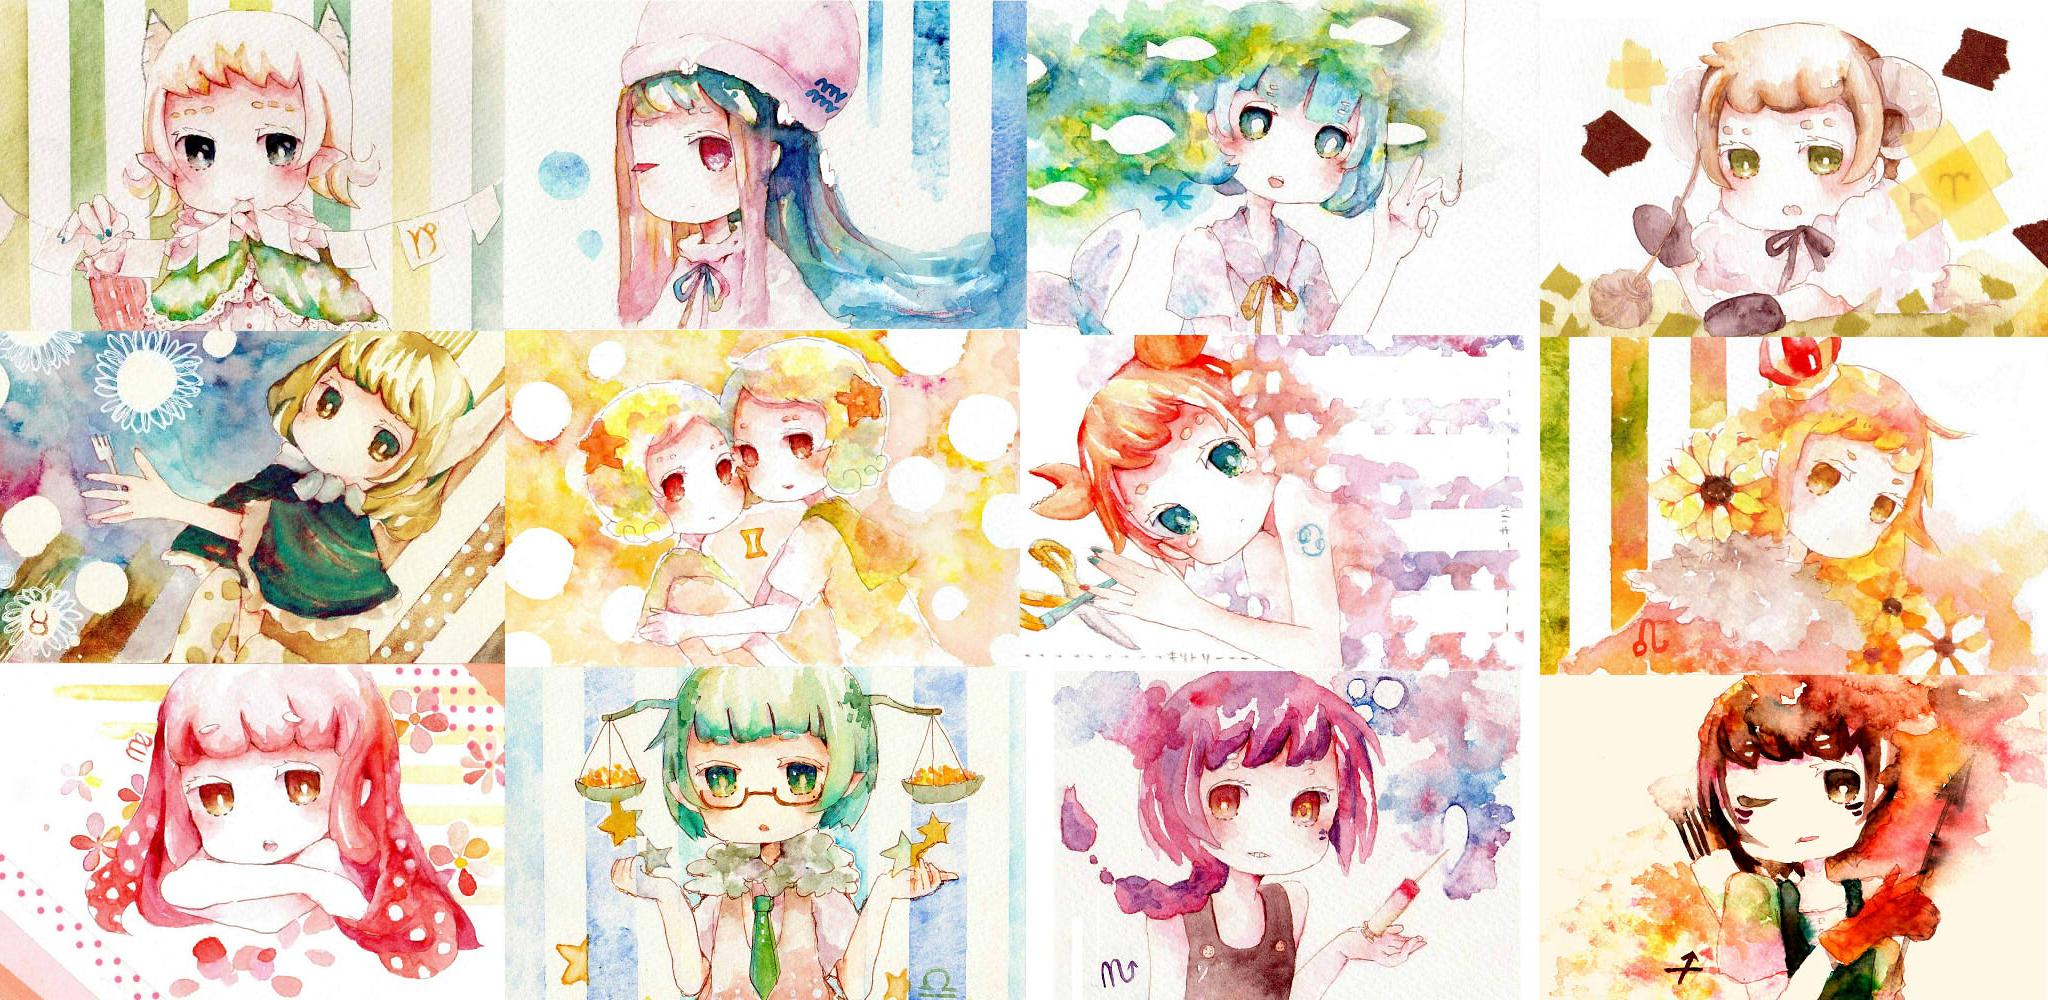 Anime Characters Zodiac Signs Libra : Anime zodiac pisces newhairstylesformen